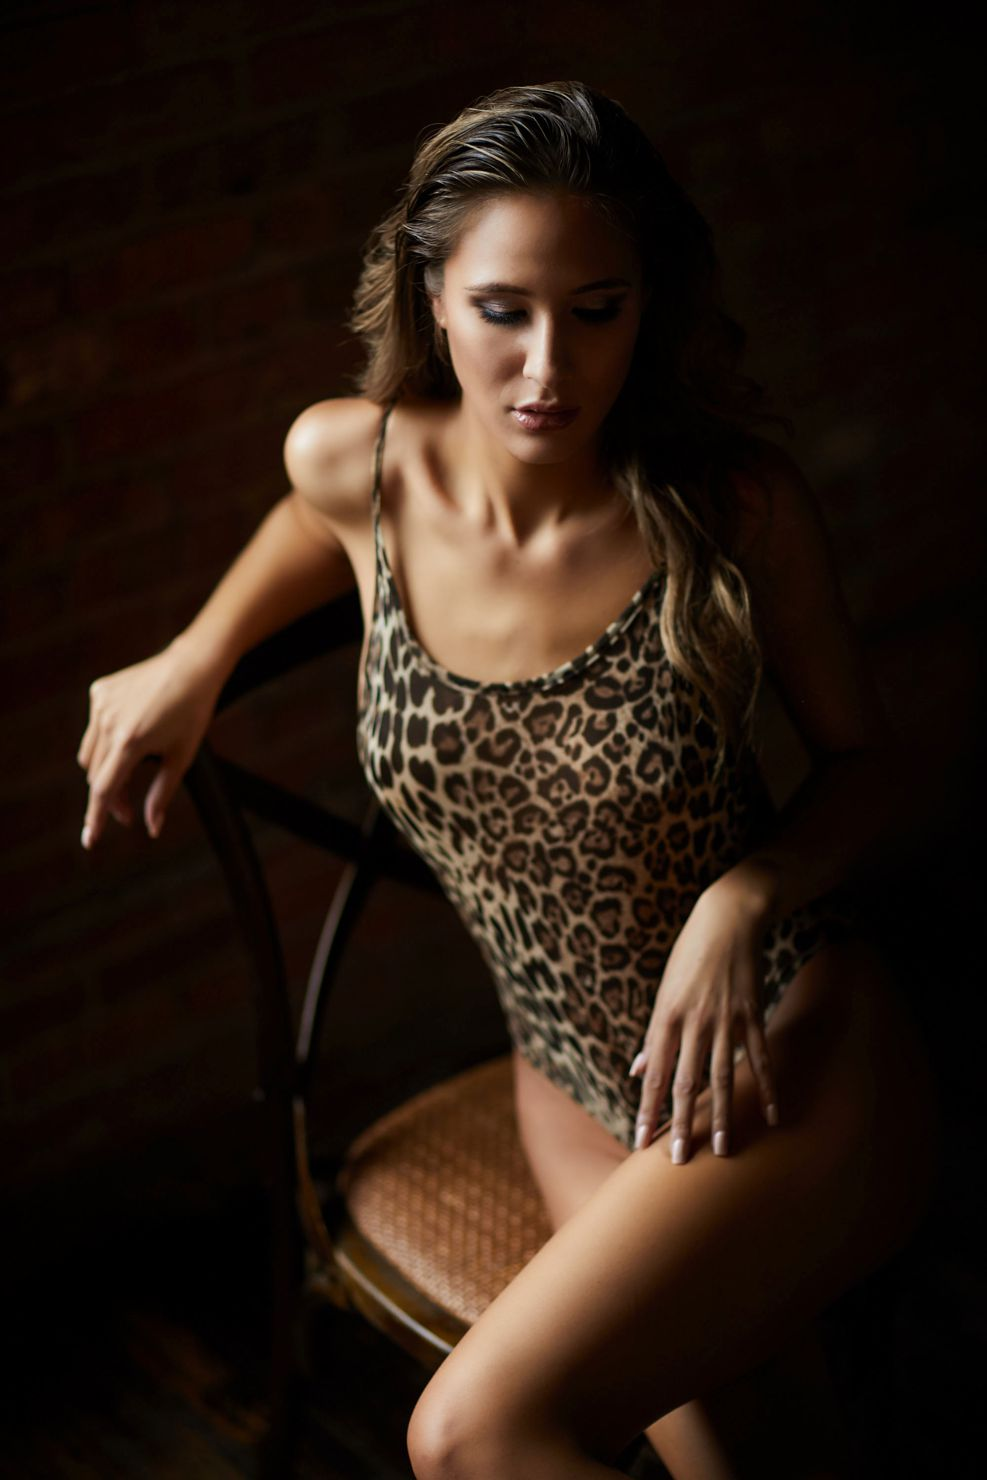 sexy photos lingerie boudoir - Top 3 Reasons Why You Should Have a Boudoir Session.